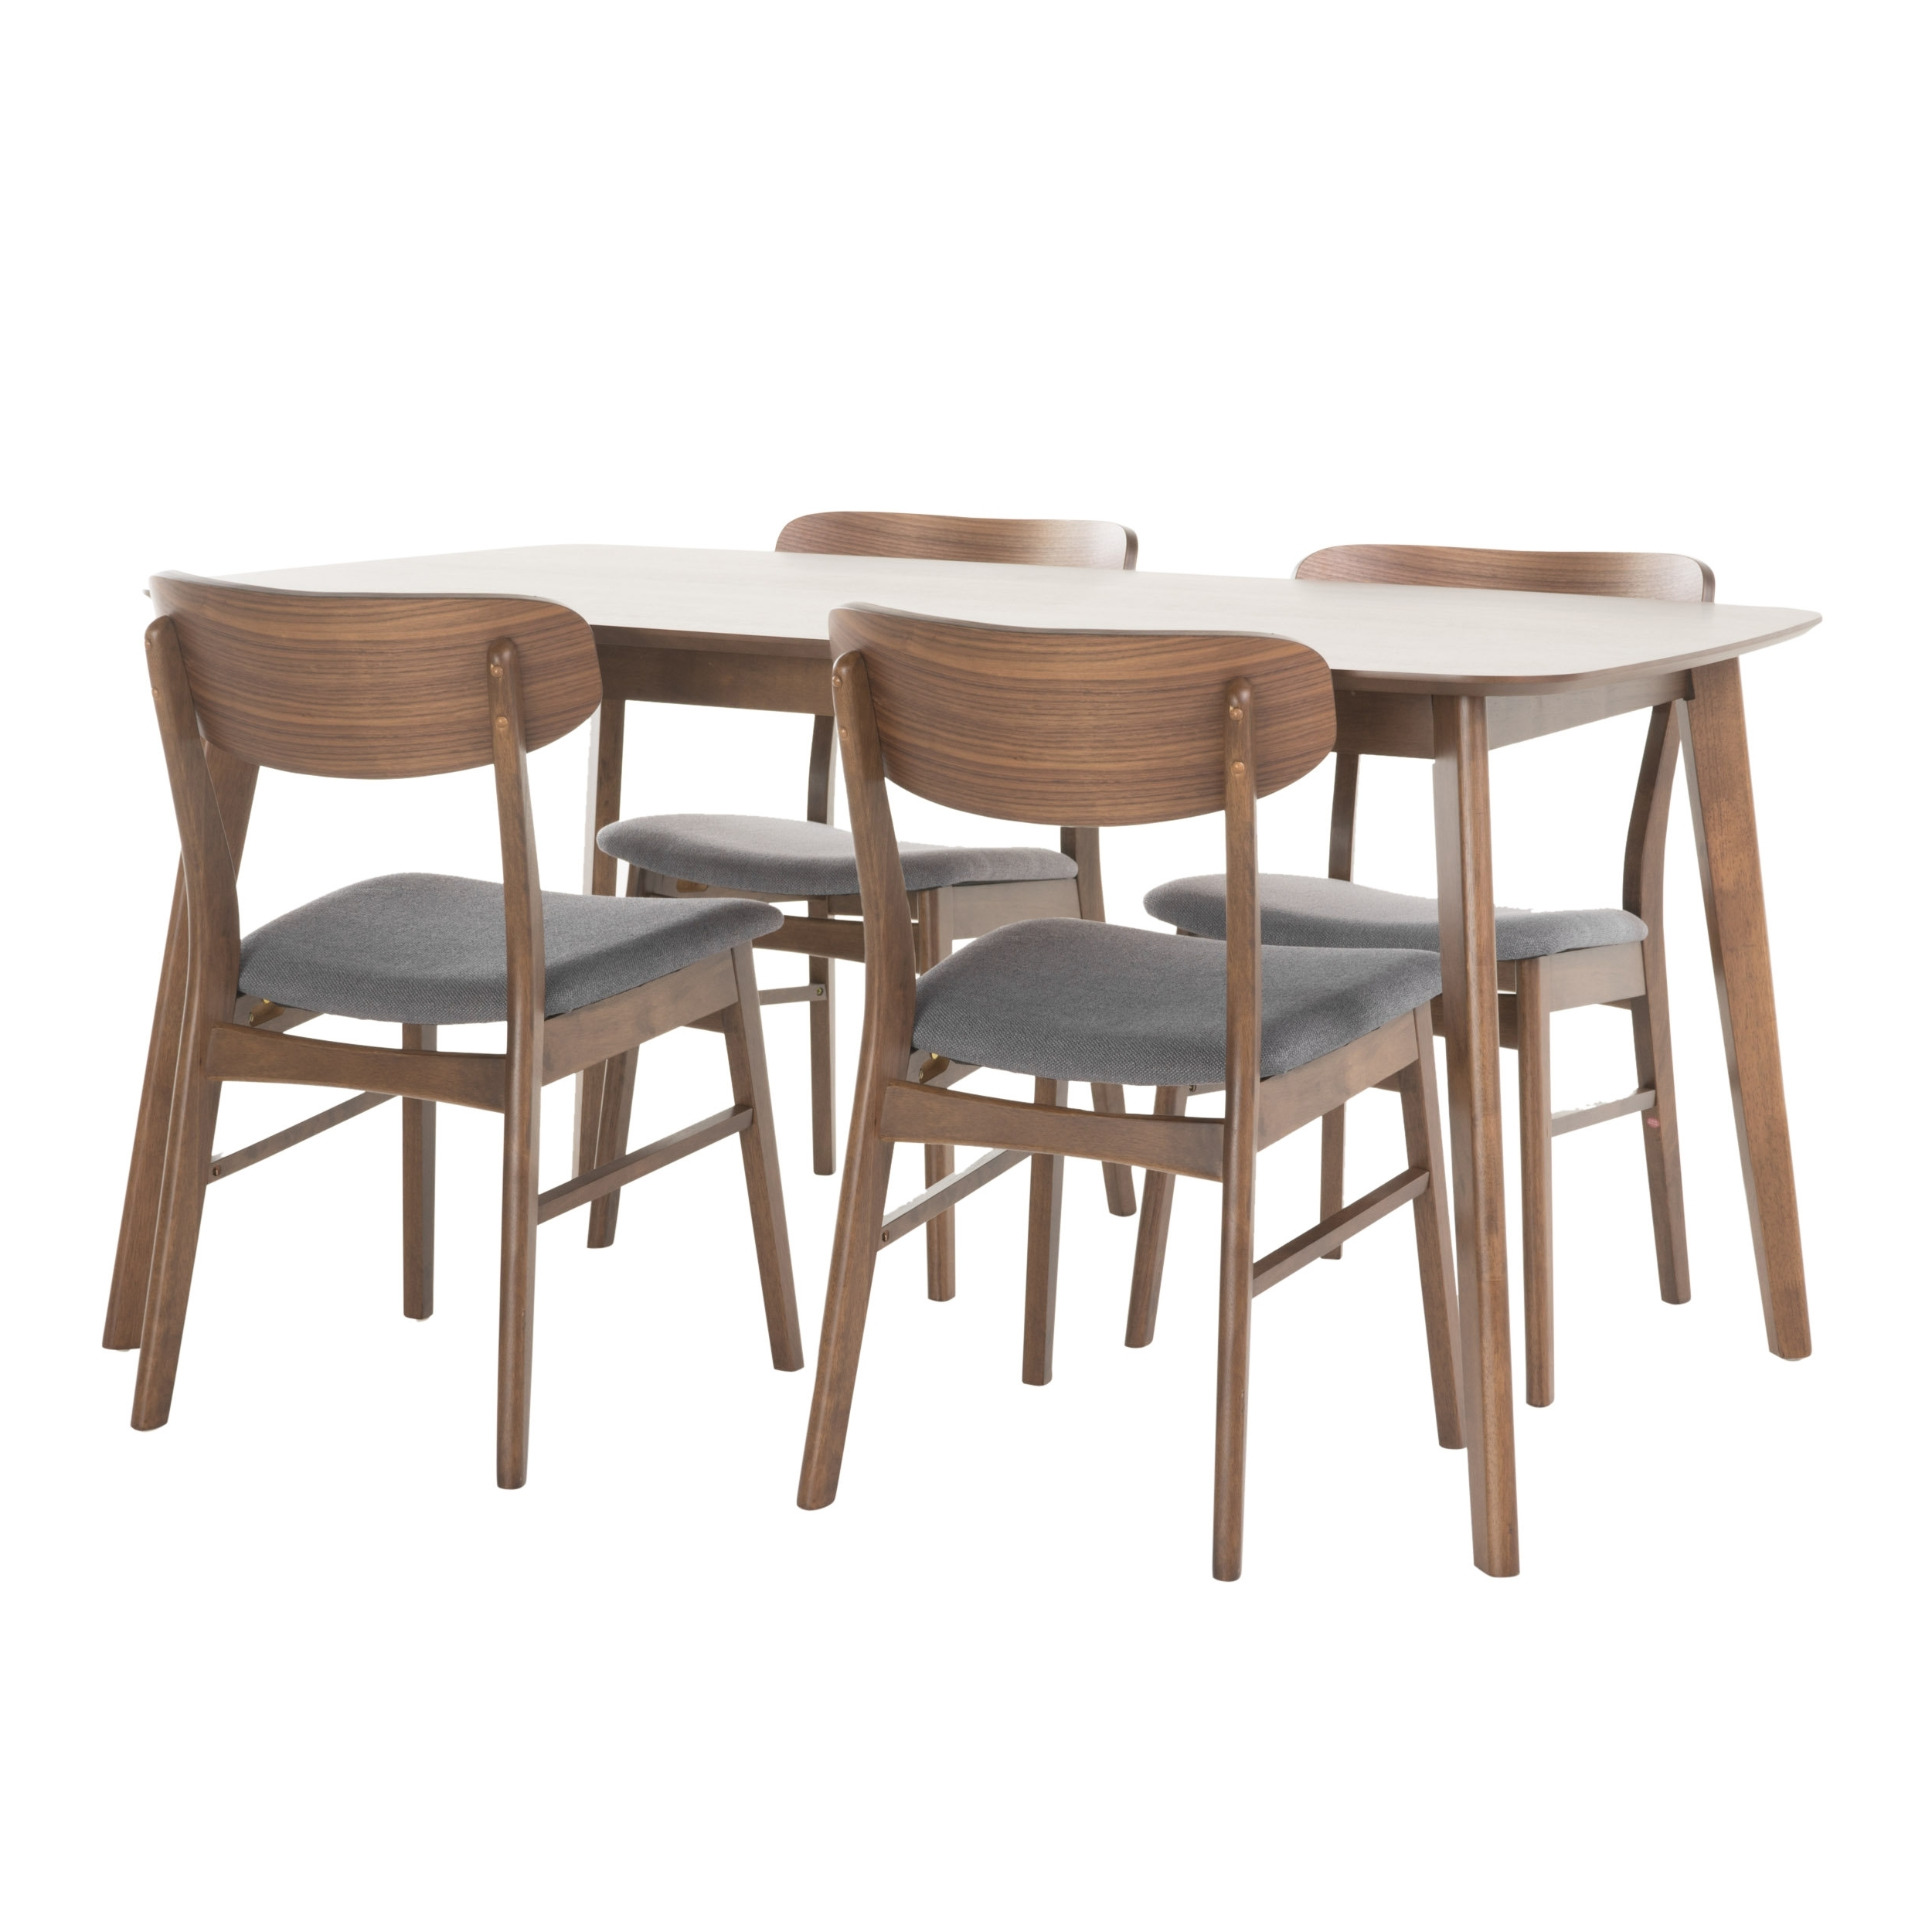 Wayfair Throughout Well Known Chandler 7 Piece Extension Dining Sets With Wood Side Chairs (View 24 of 25)